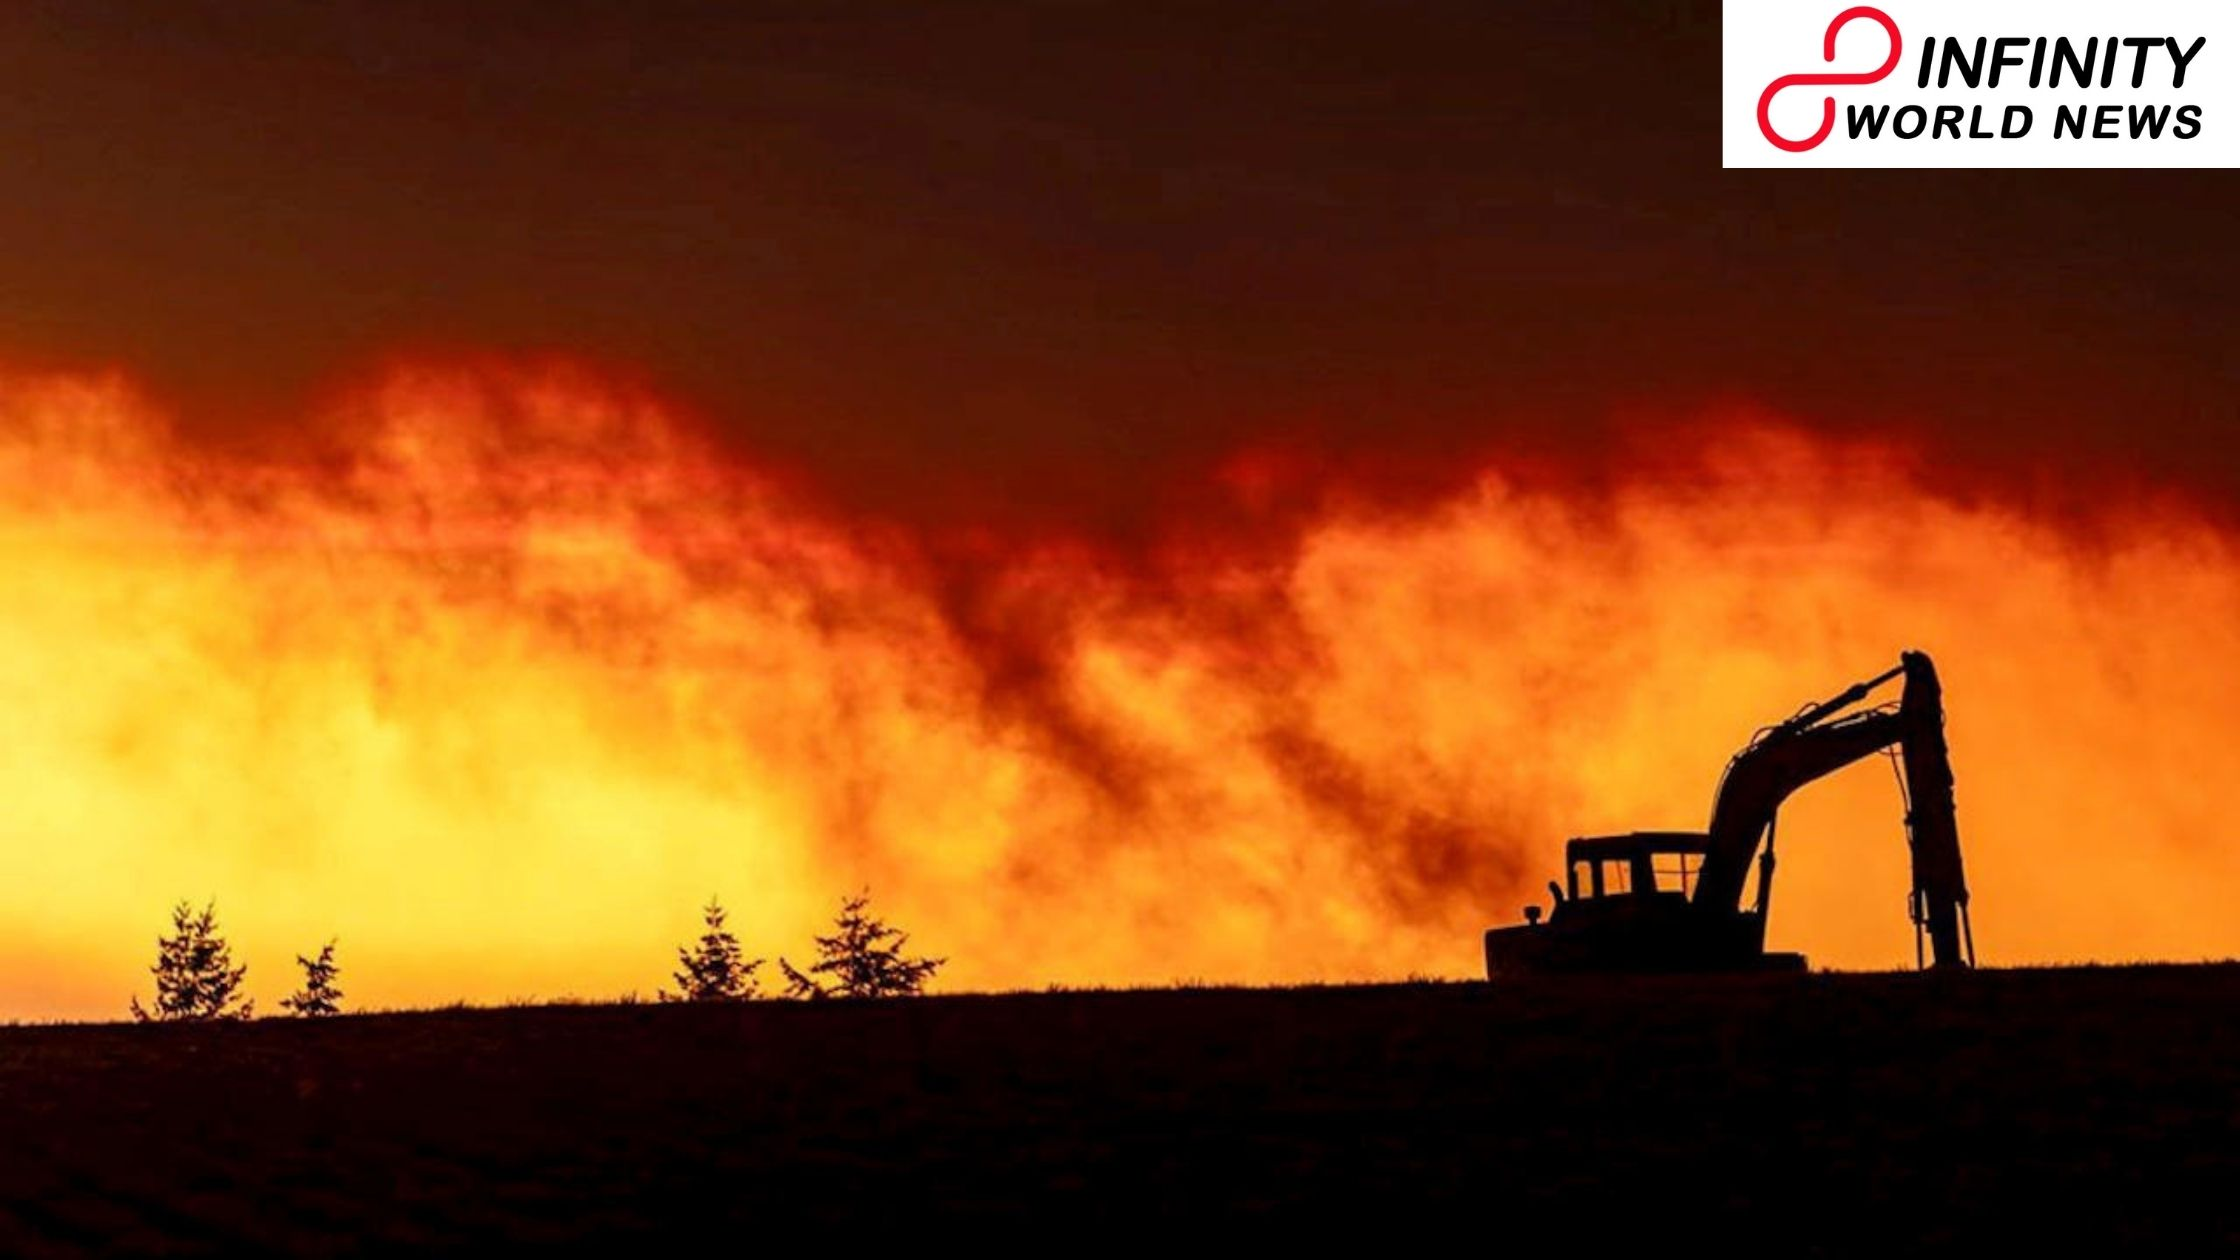 US fierce blazes fuelled by environmental change, California governor says